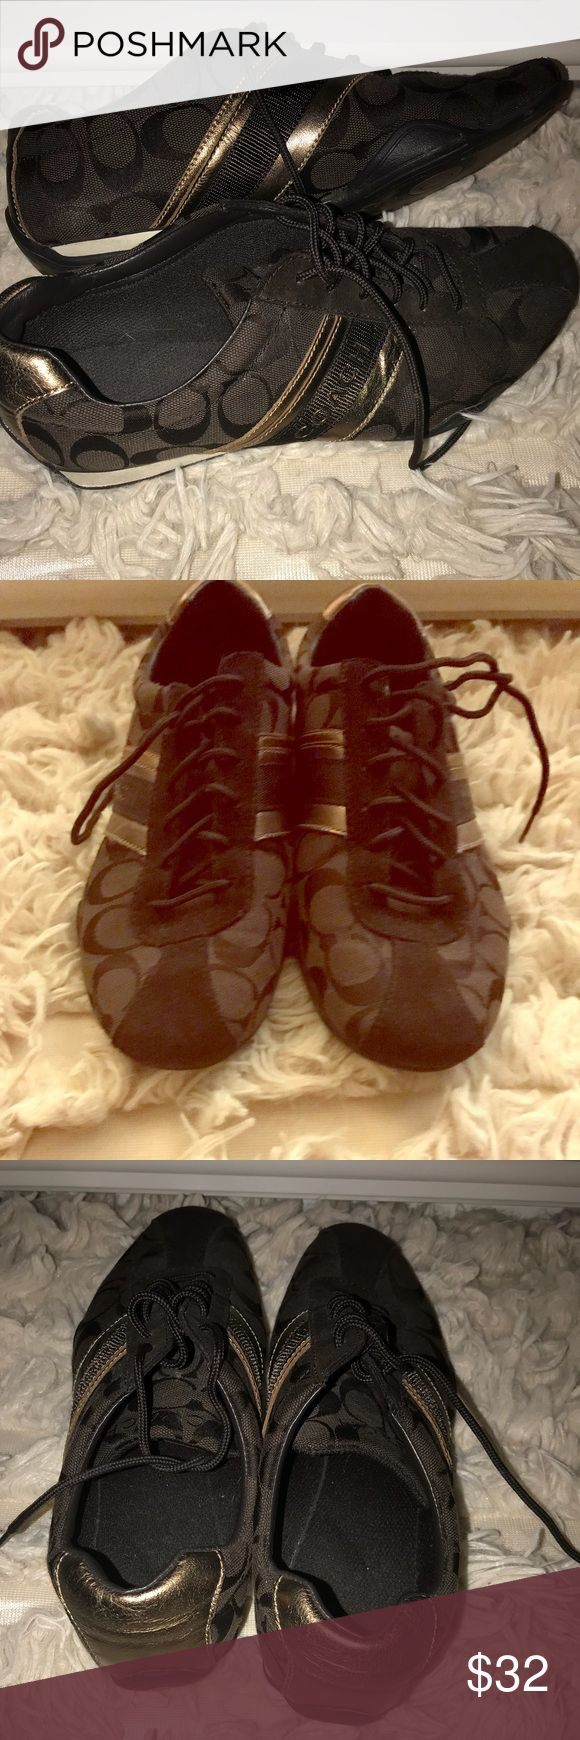 Coach shoes Signature Coach tennis shoes size 9.5 great condition Coach Shoes Sneakers